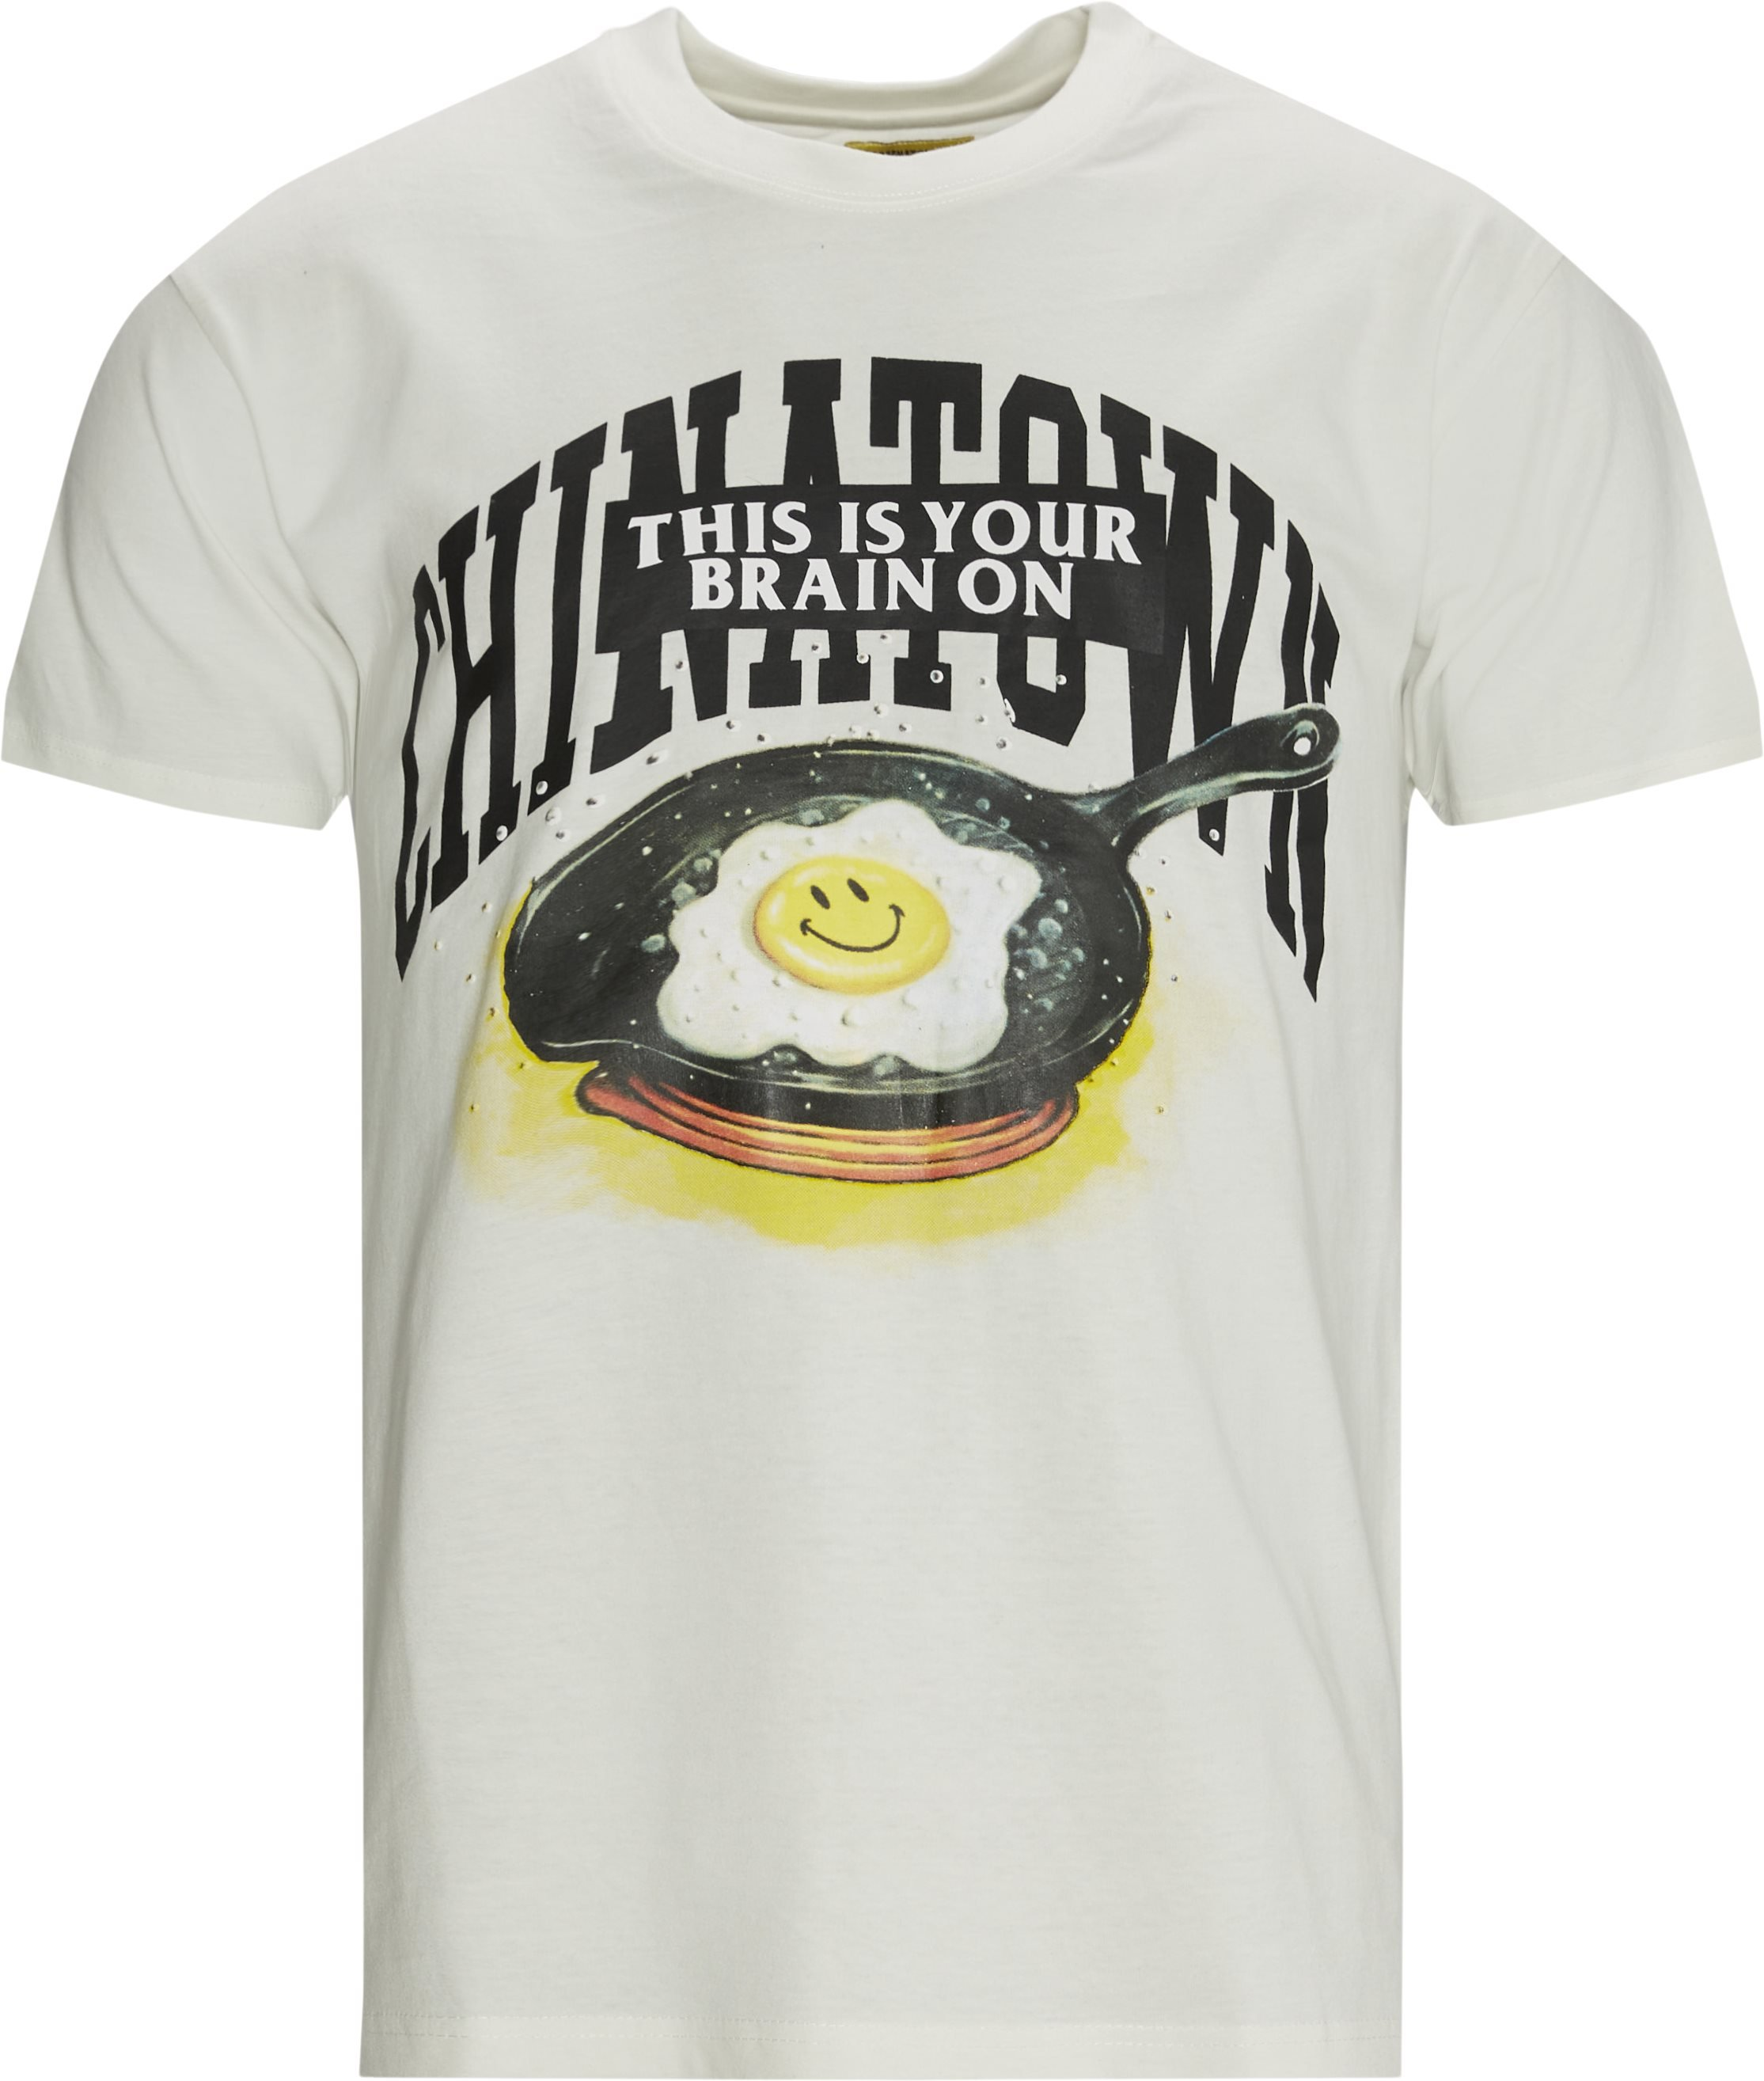 SMILEY BRAIN ON FRIED t-shirt - T-shirts - Regular fit - Sand